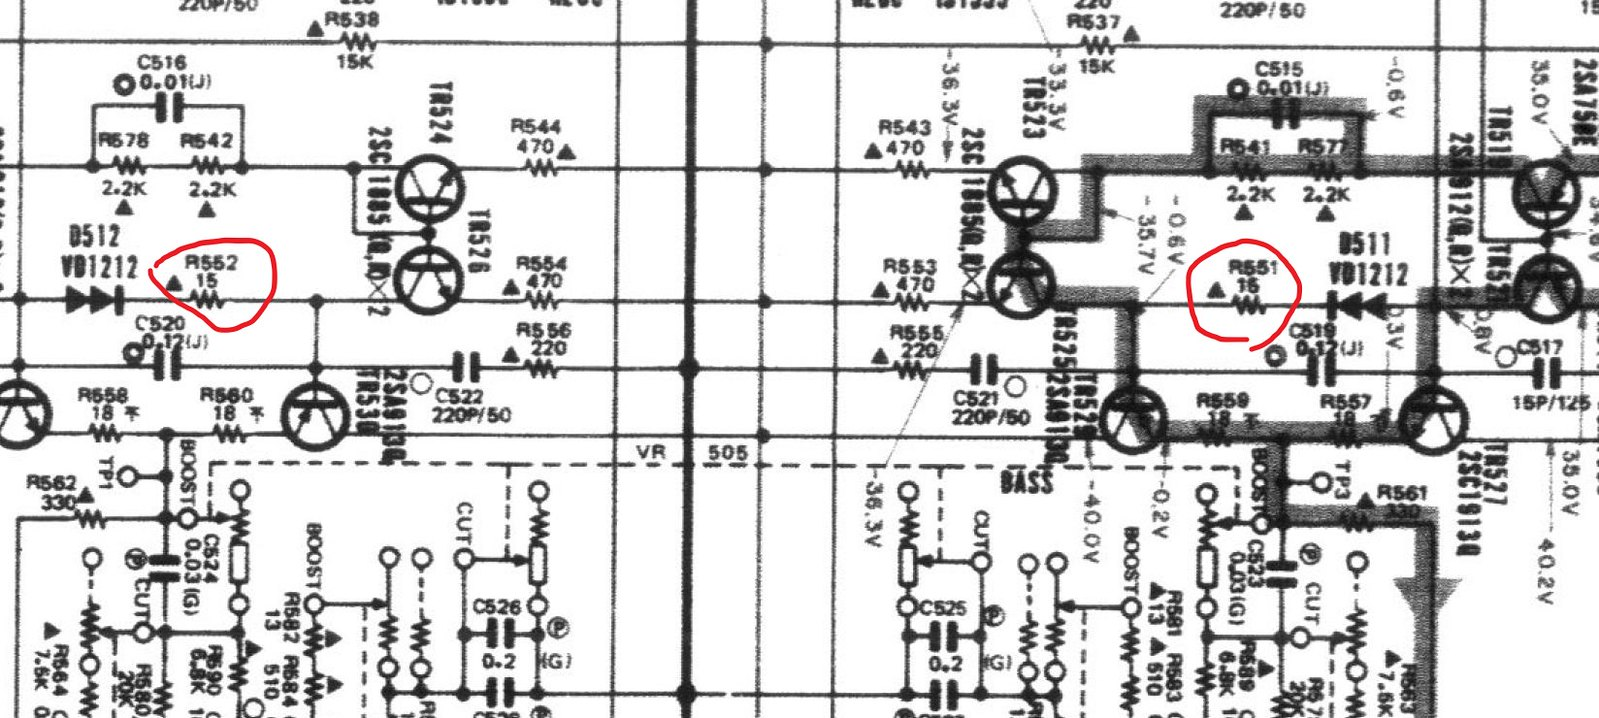 Yamaha C2a Preamp Another Thread About Crackling And Popping Page Stereo Audio Schematic Img